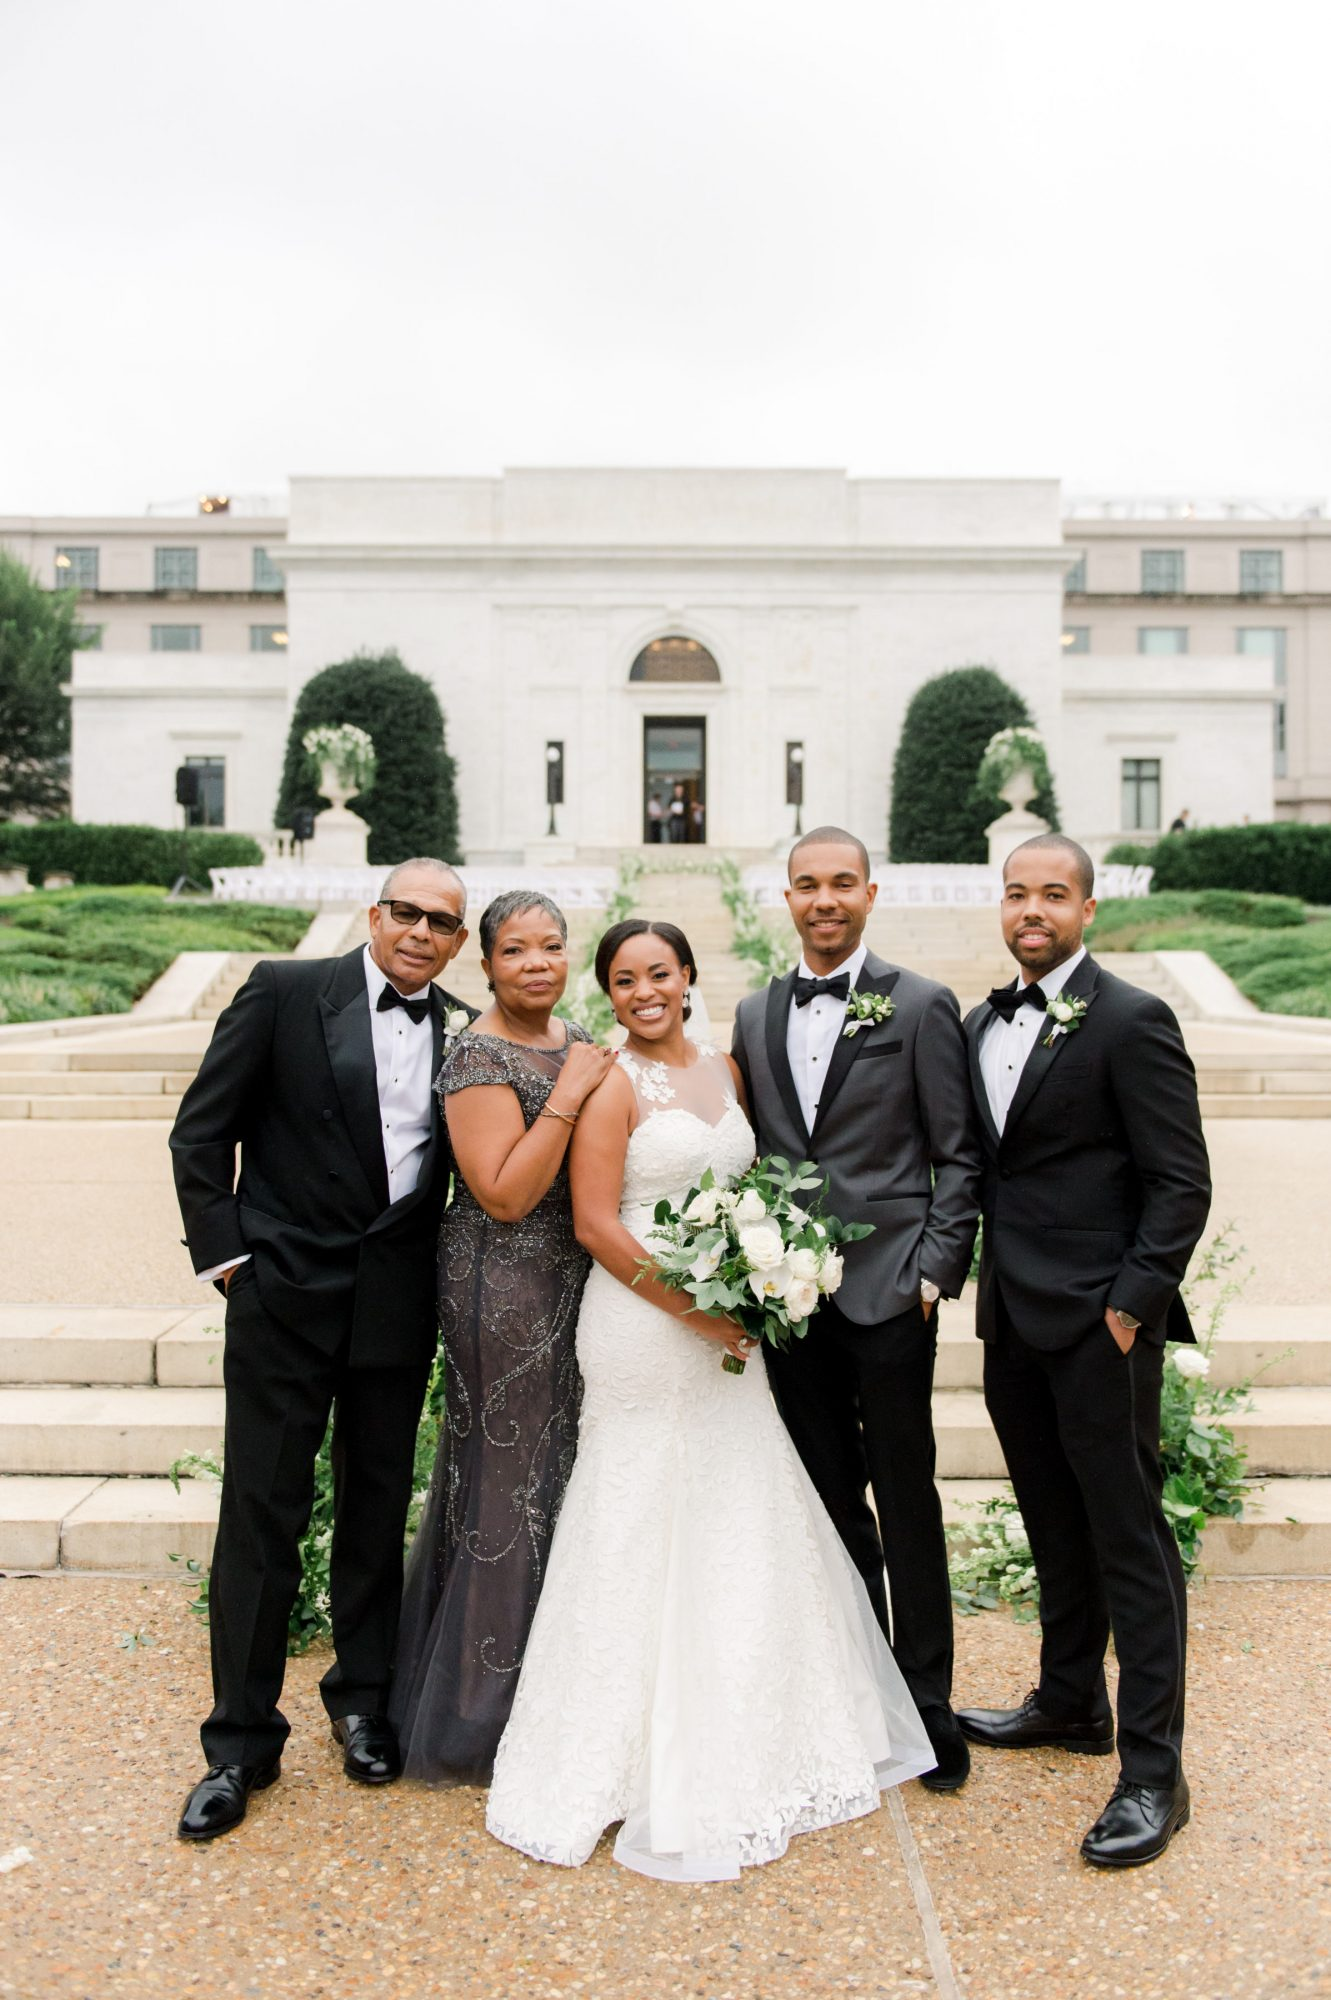 melissa justen wedding couple and family in front of venue